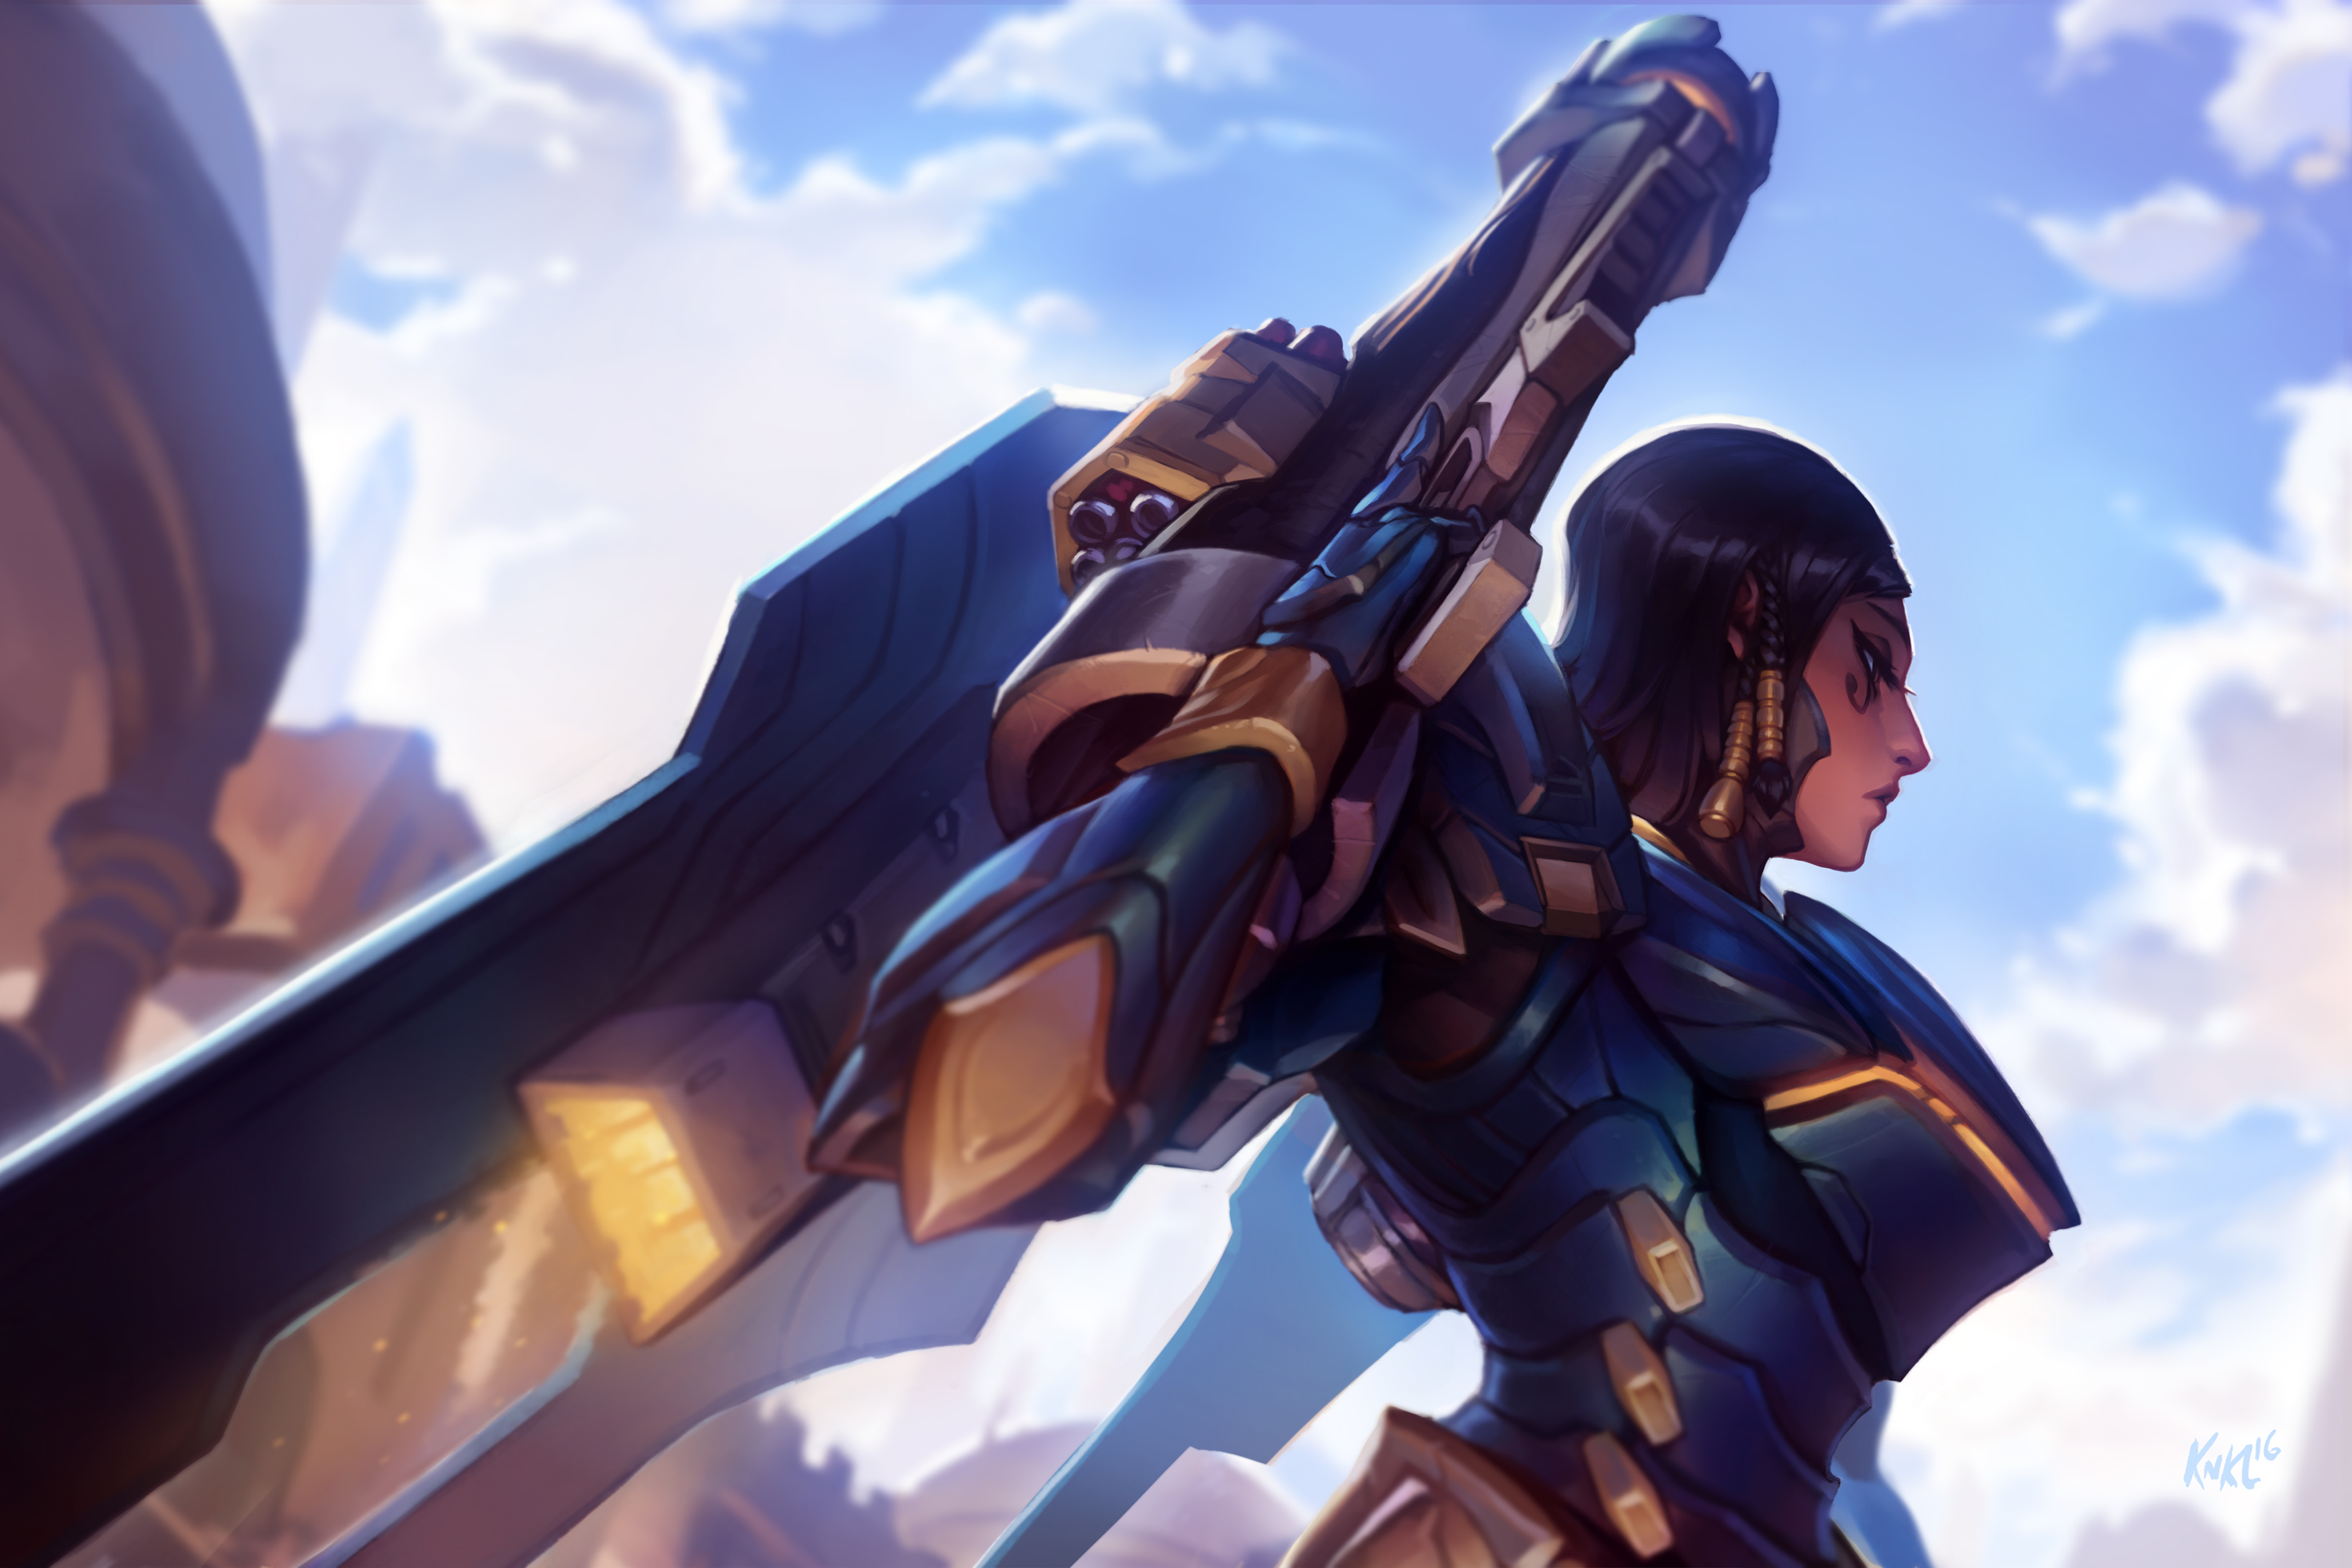 pharah___21_days_of_overwatch__by_knkl-d